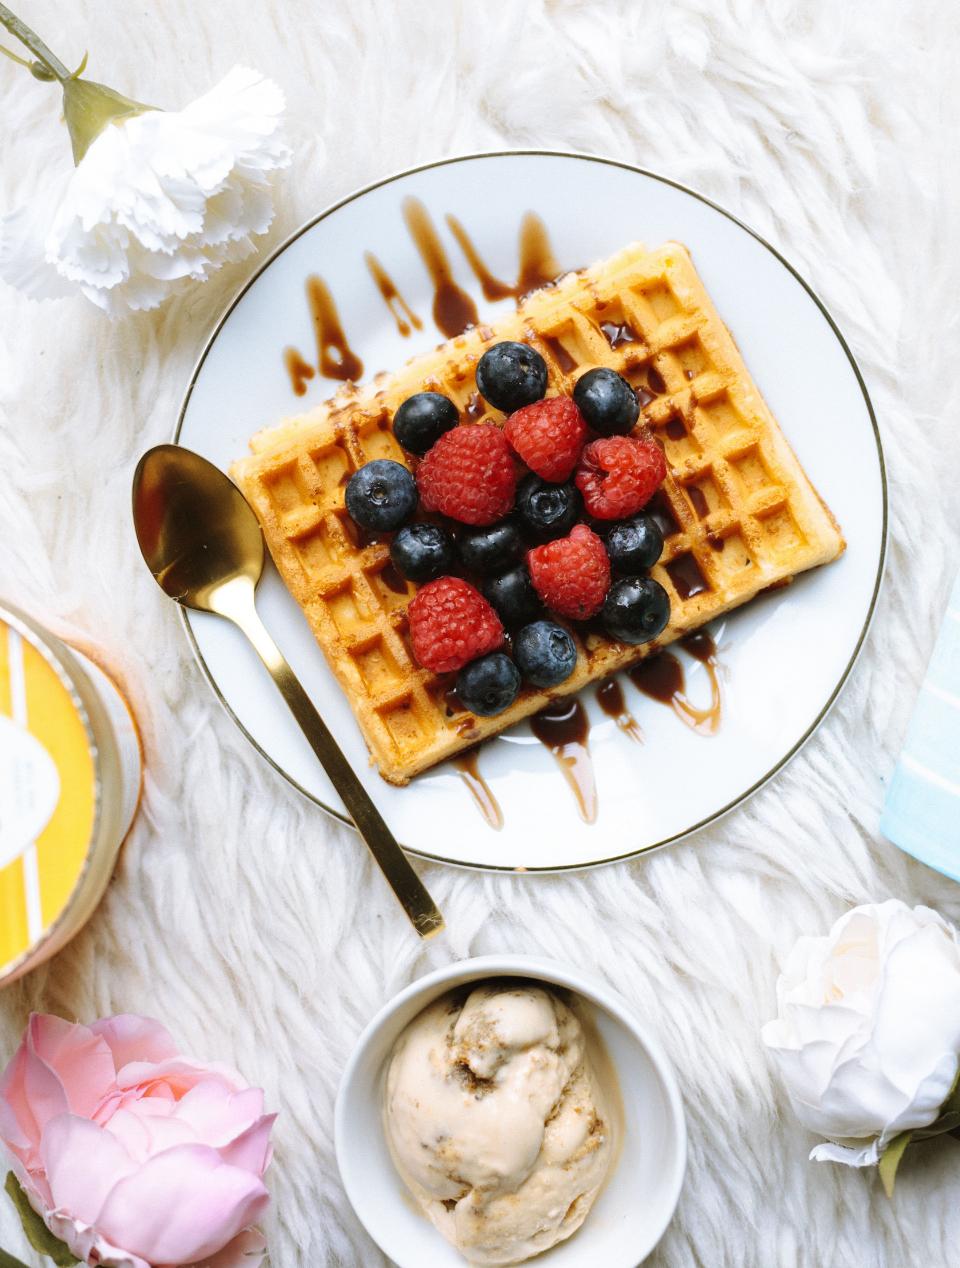 waffles breakfast berries top view food delicious syrup blueberries fresh fruit belgium plate spoon raspberry flat lay